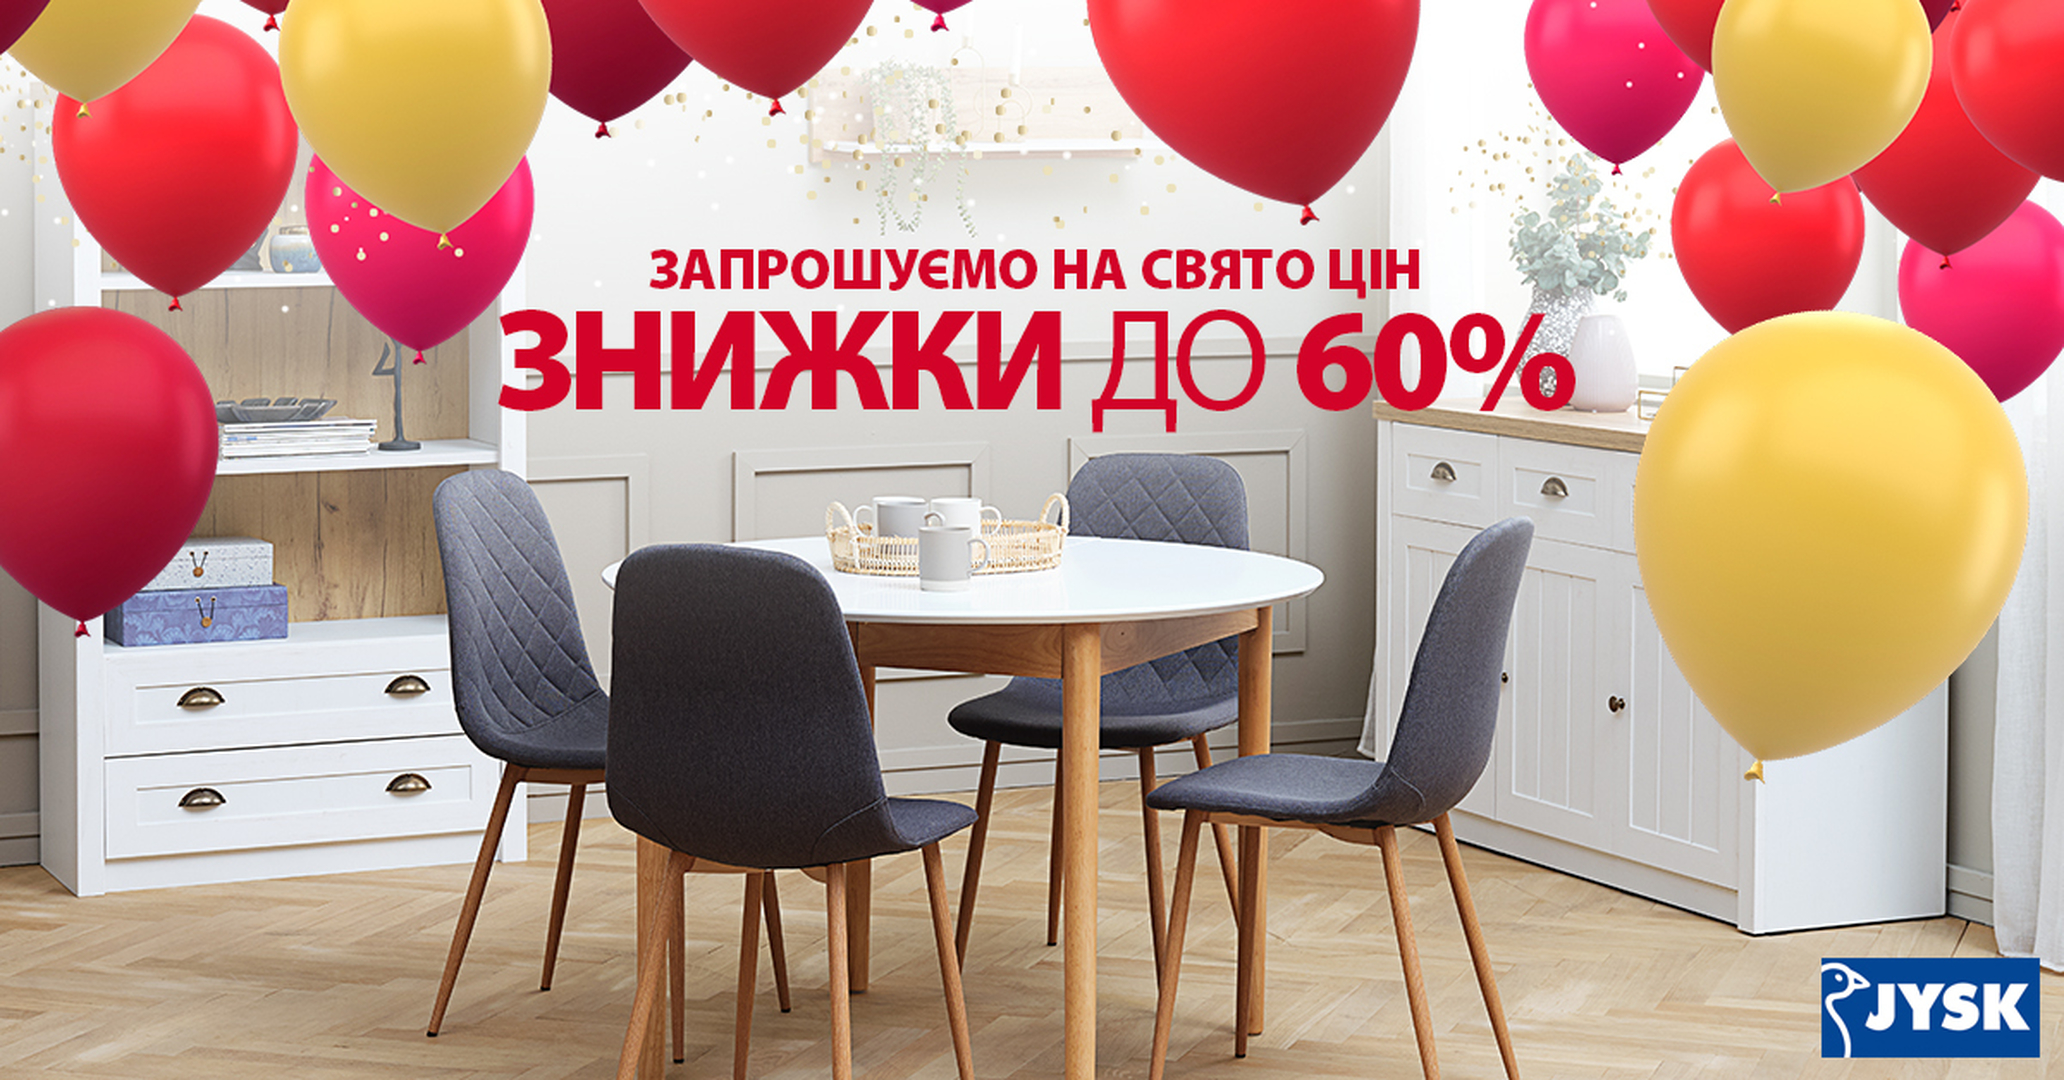 Price party at JYSK! Celebrate with us and get a certificate valid 100 UAH! image-0